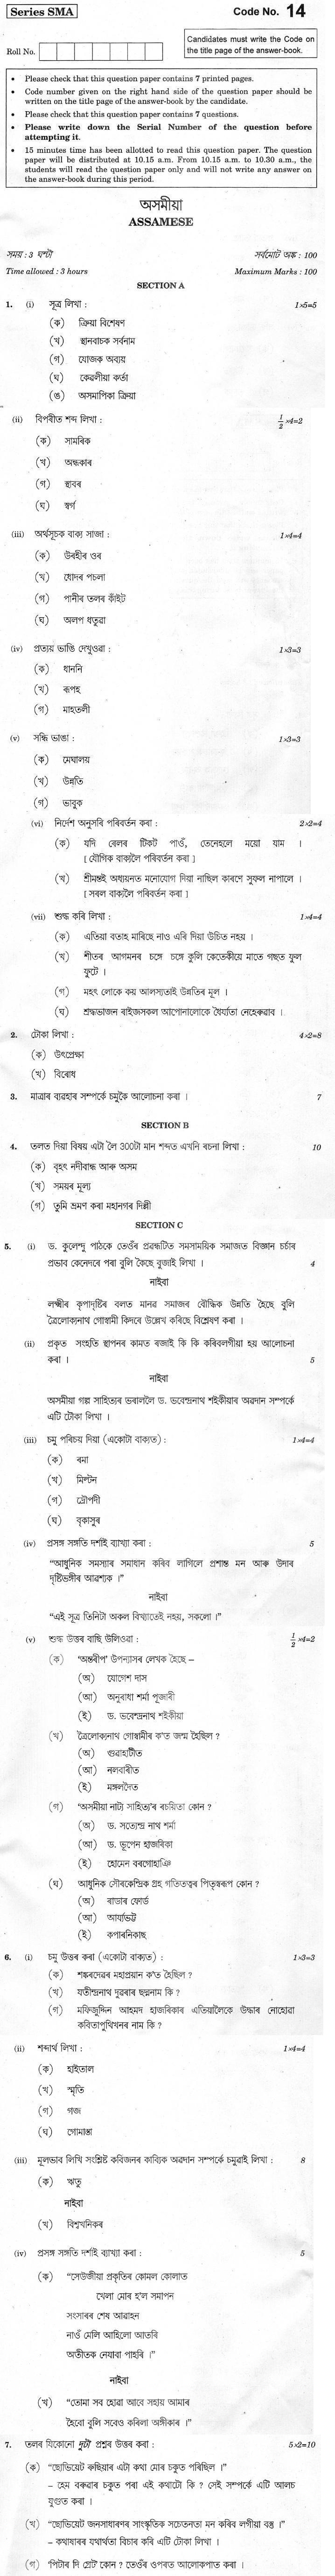 CBSE Class XII Previous Year Question Paper 2012 Assamese